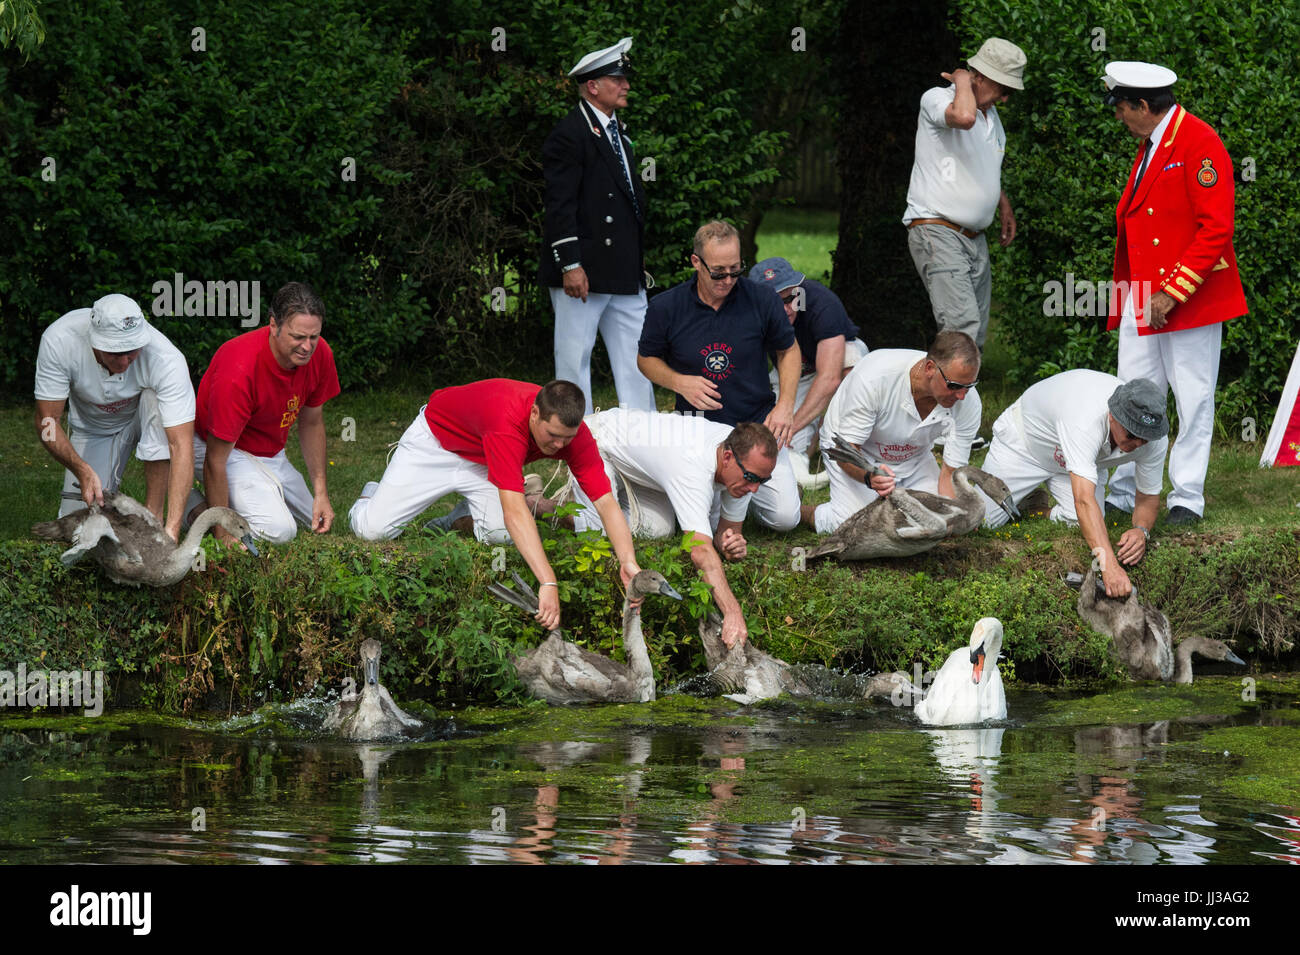 London, UK. 17th July, 2017. Swan Upping takes place on the River Thames near Windsor, Berkshire, UK. The annual - Stock Image